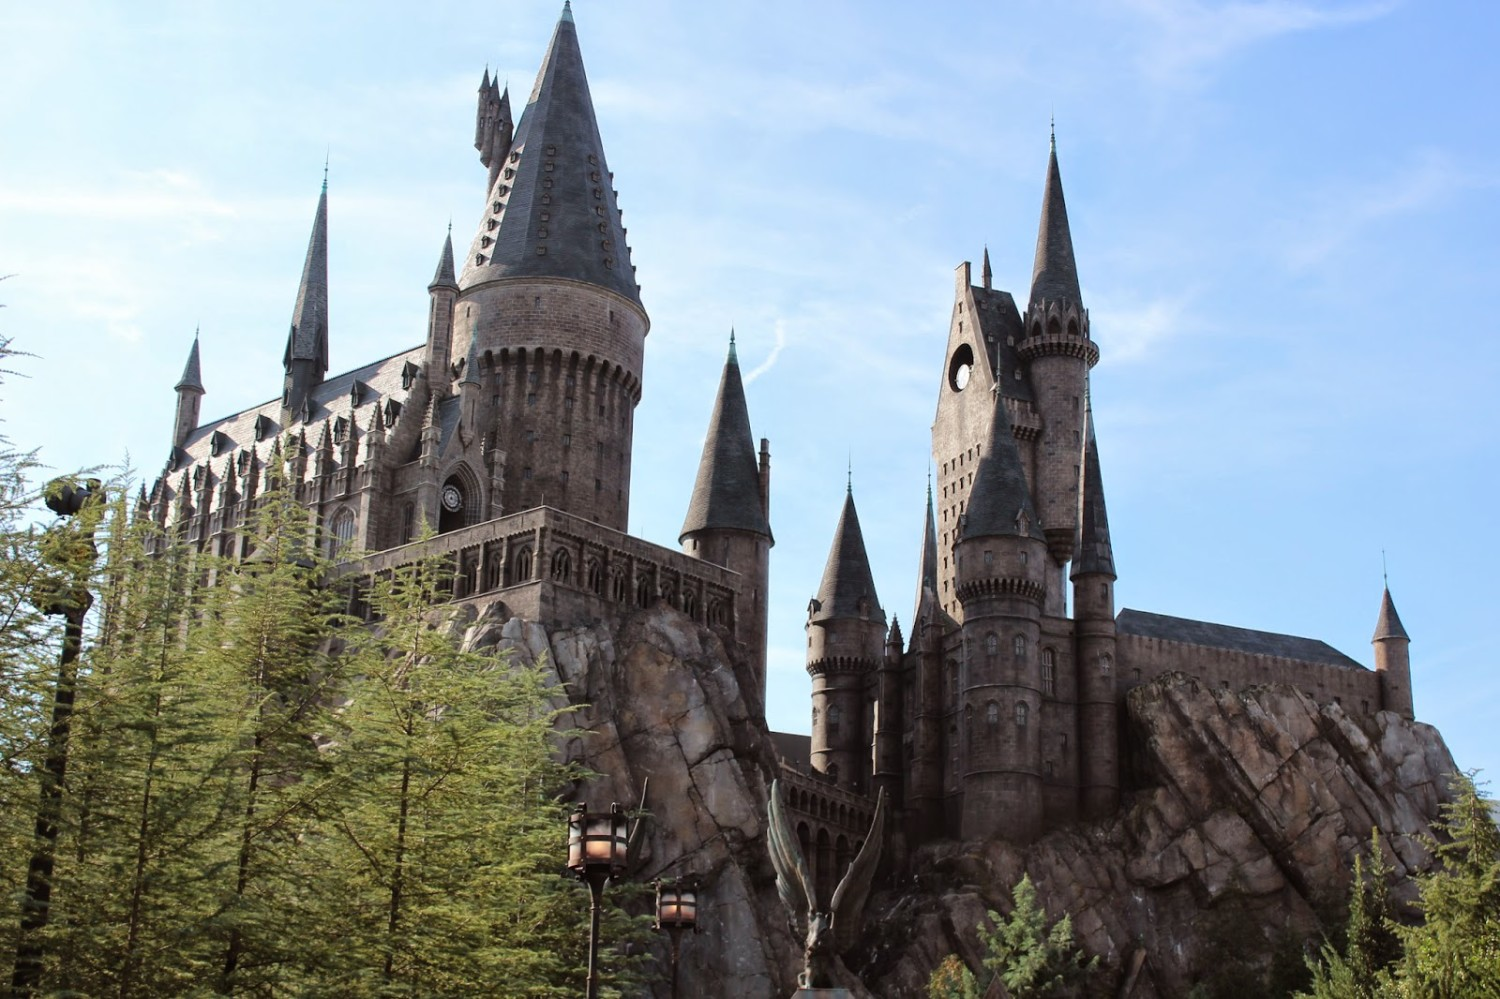 Wizarding-World-of-Harry-Potter-Hogwarts-Castle-